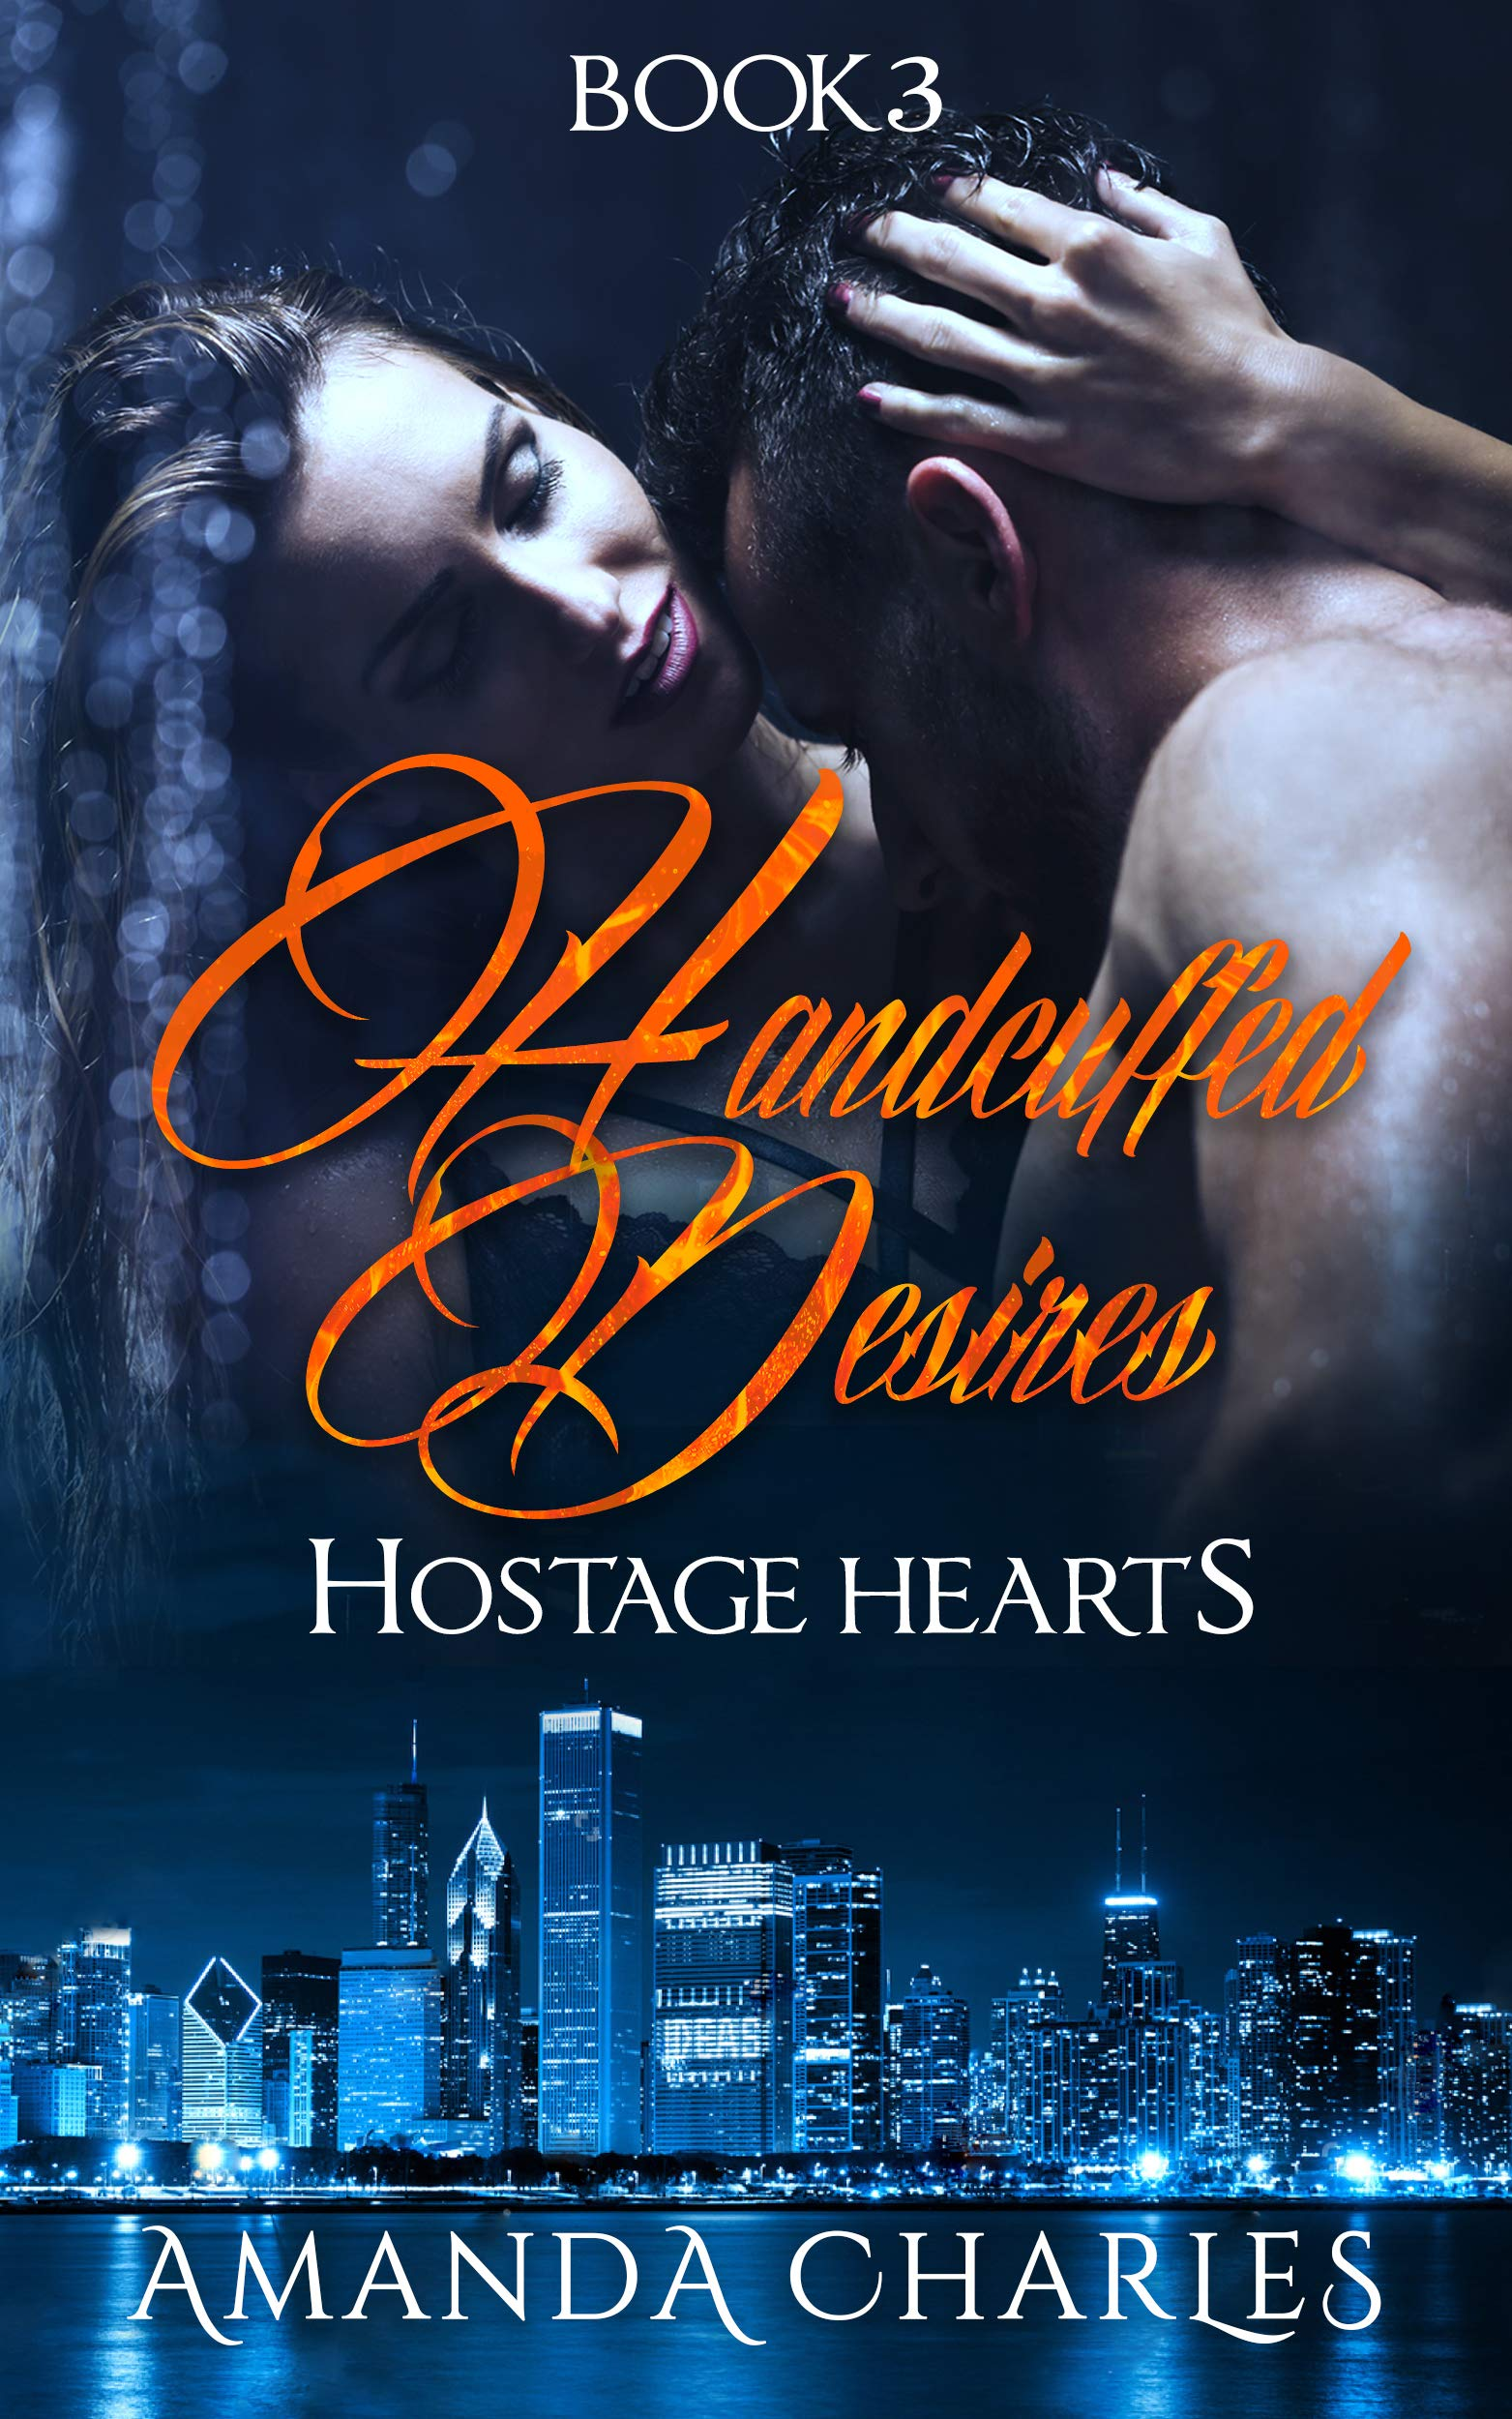 Handcuffed Desires: Hostage Hearts (Book 3)